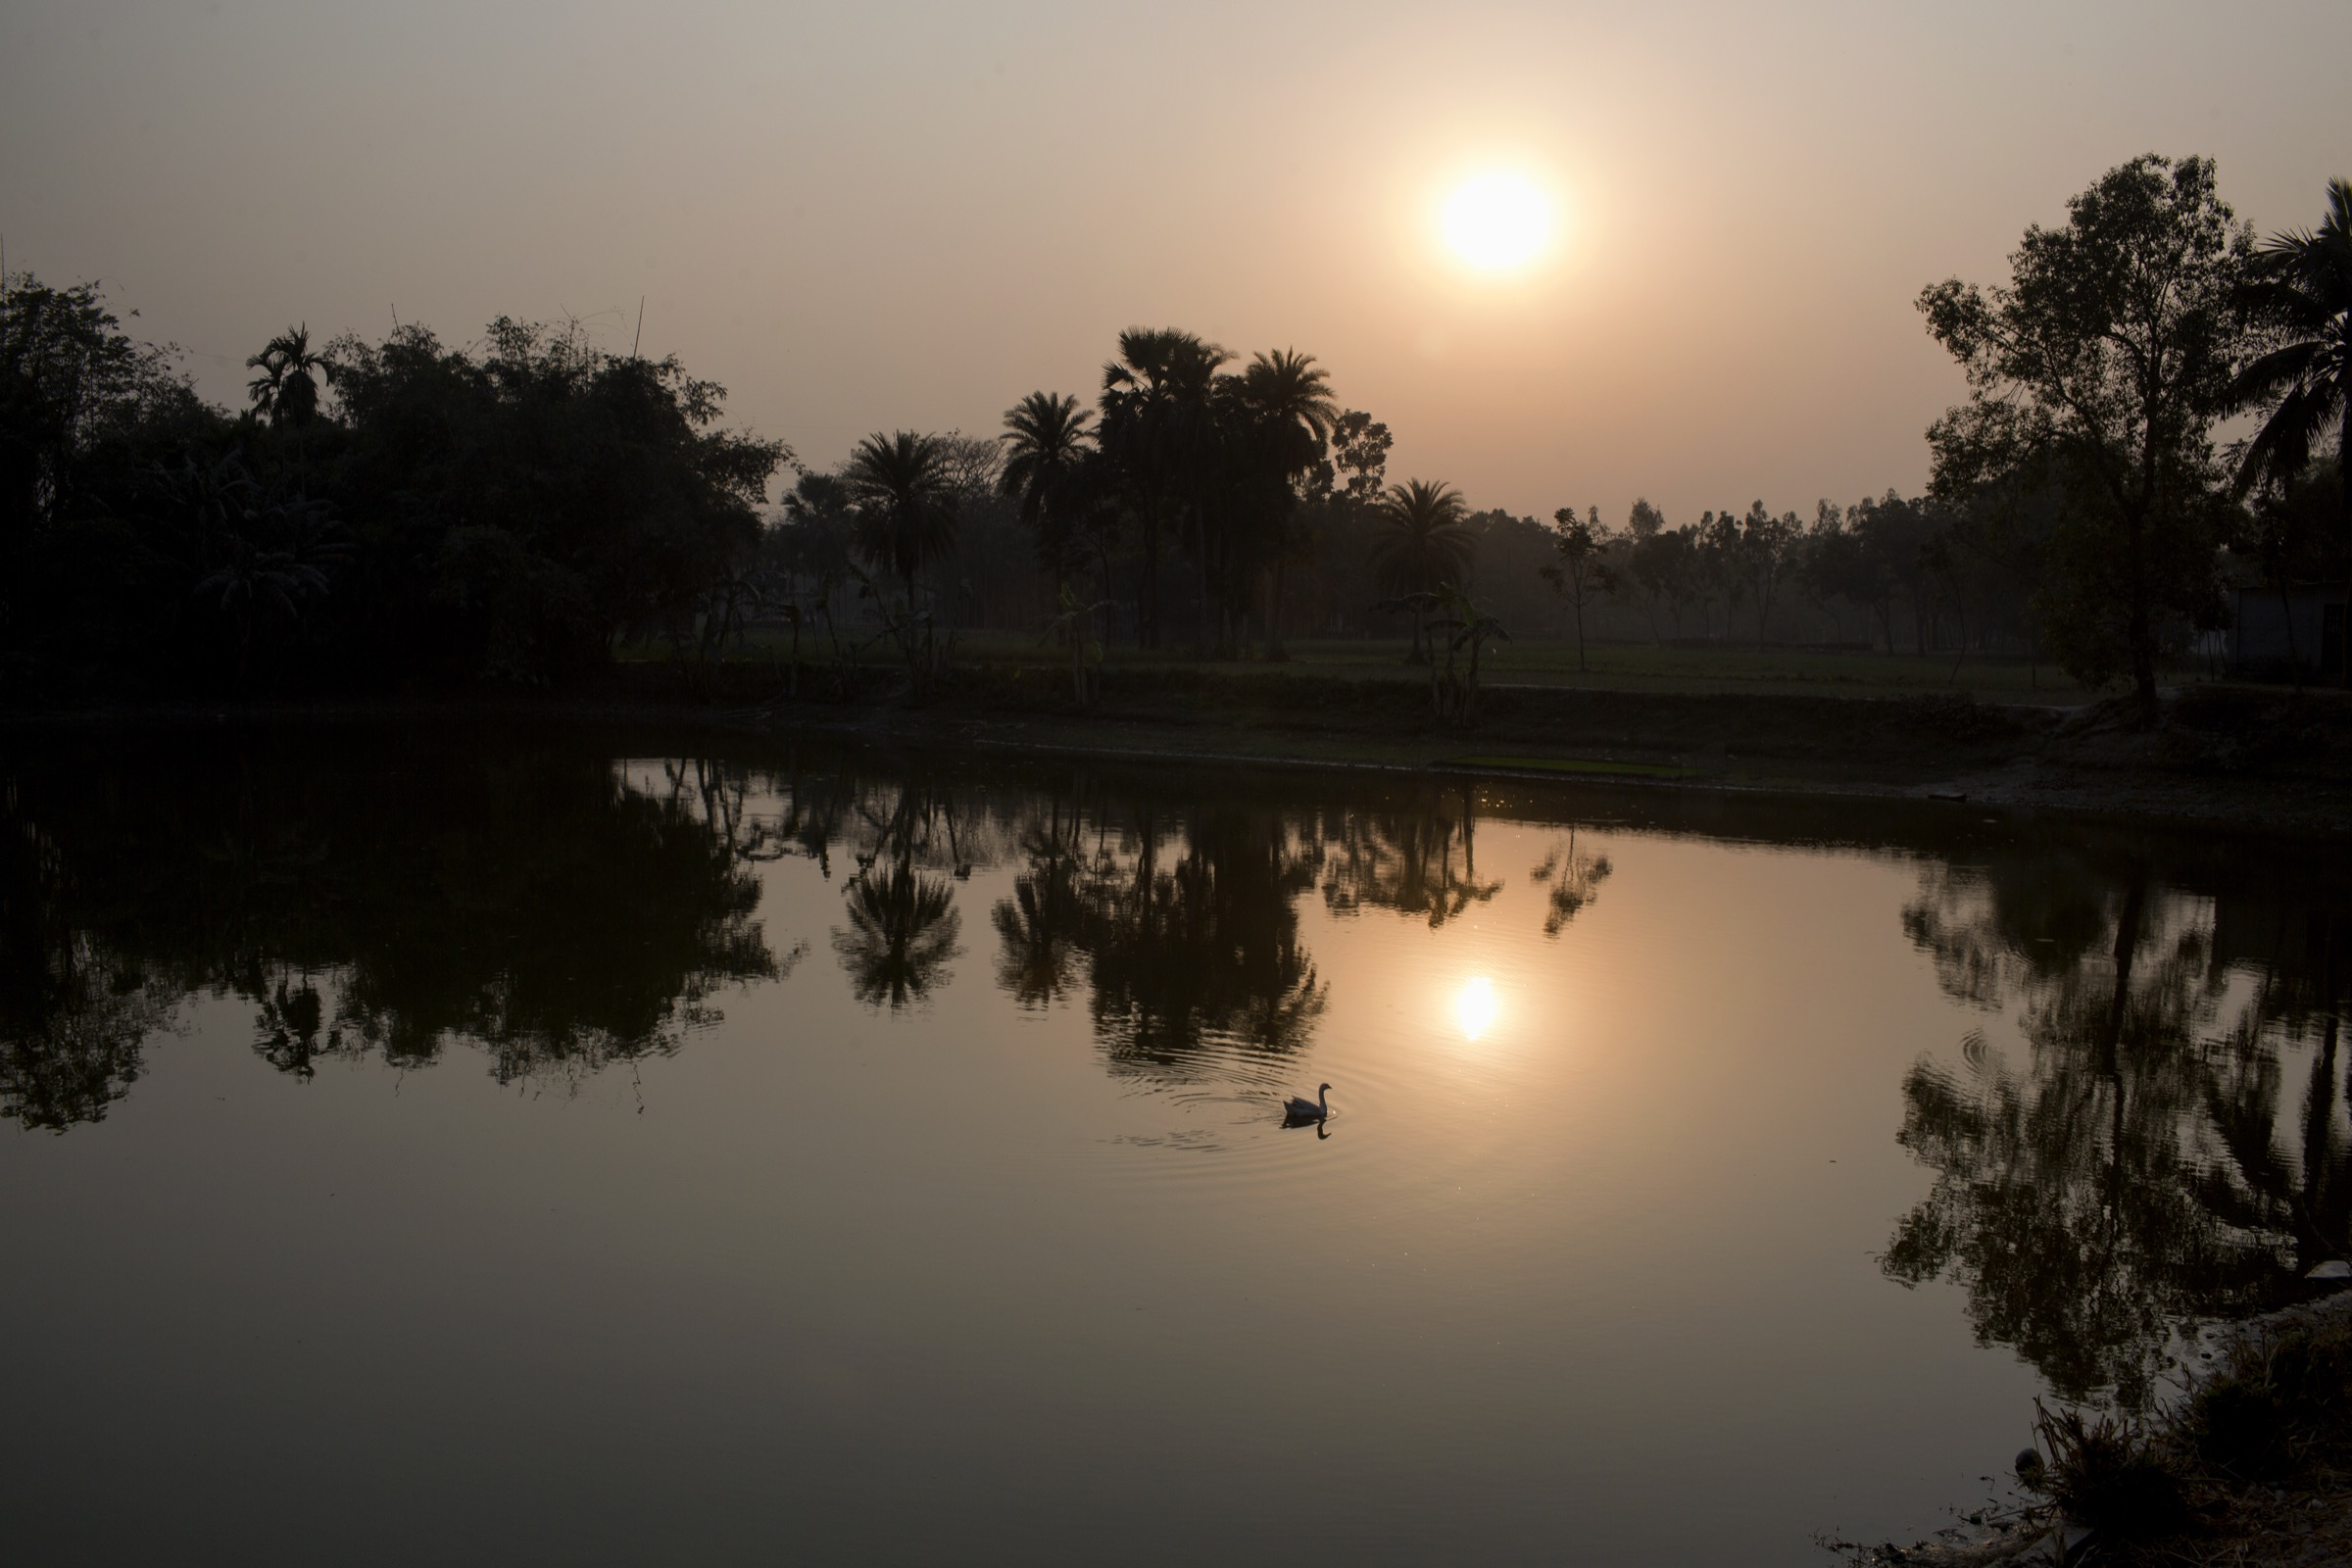 Dawn breaks over a small pond, not far from northern Bangladesh's Rangpur City. Photograph by A.M. Ahad